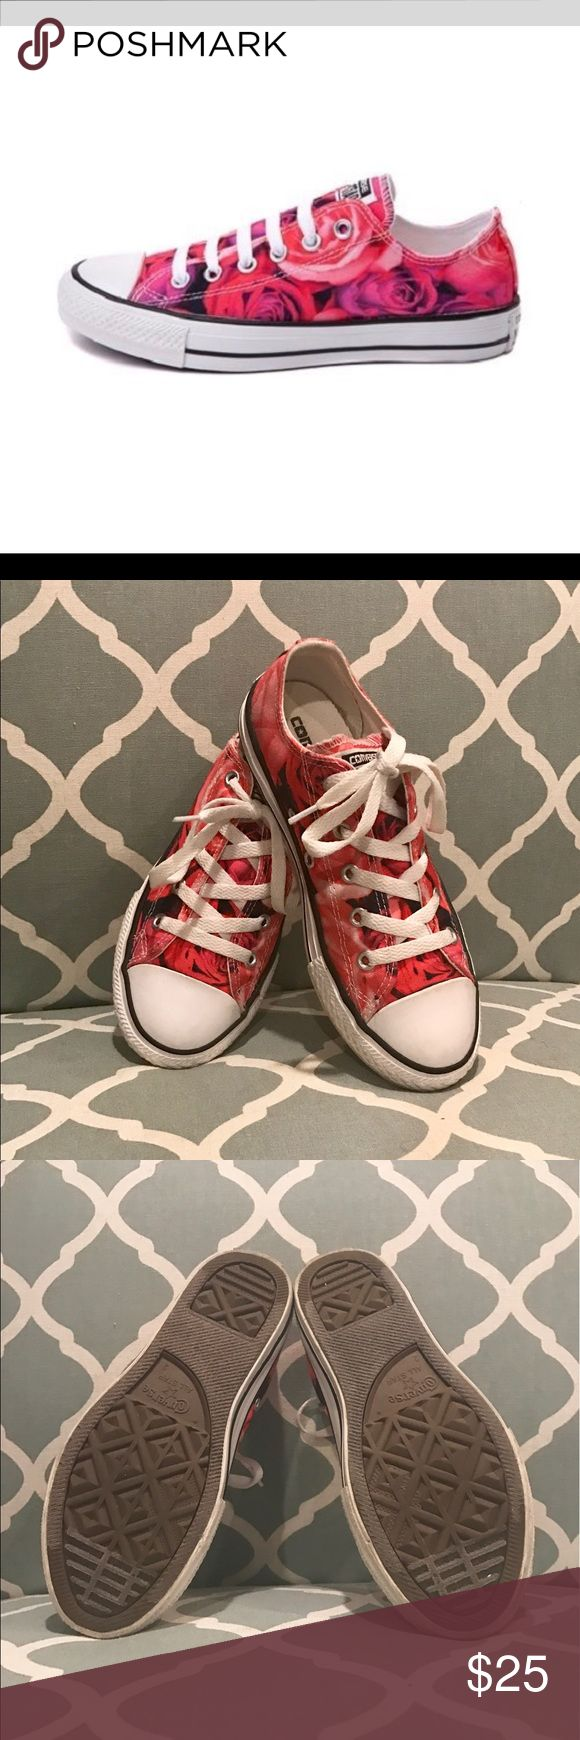 Floral Converse ( girls) Great condition girls converse so cute lightly used some of stamp on heel is worn from normal wear like converse seem to do. Other than that these are great condition size girls 2 Converse Shoes Sneakers